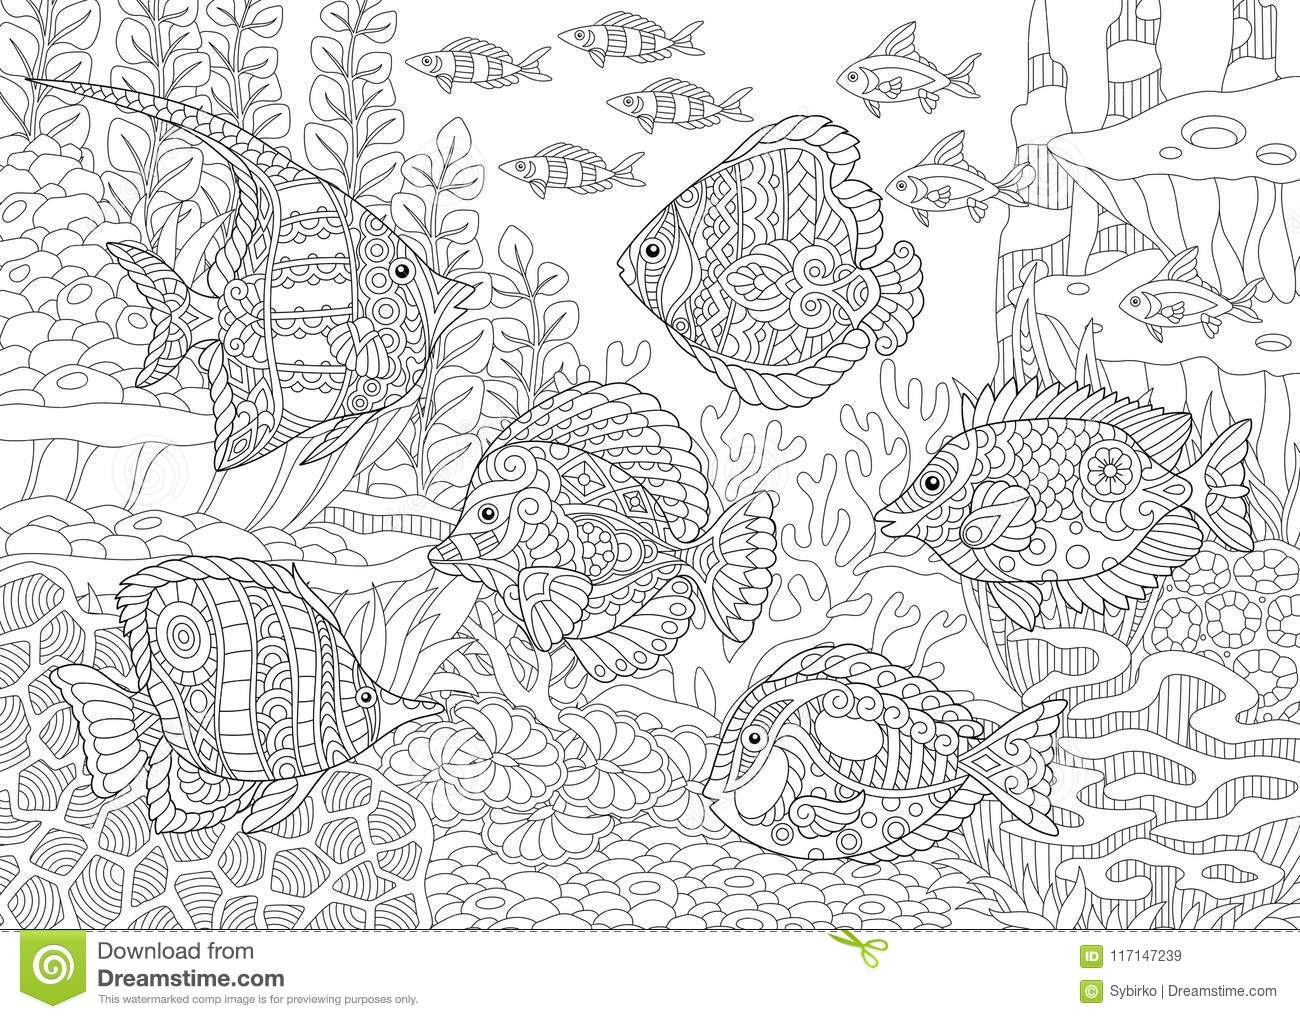 Zentangle tropical fishes stock vector. Illustration of ...